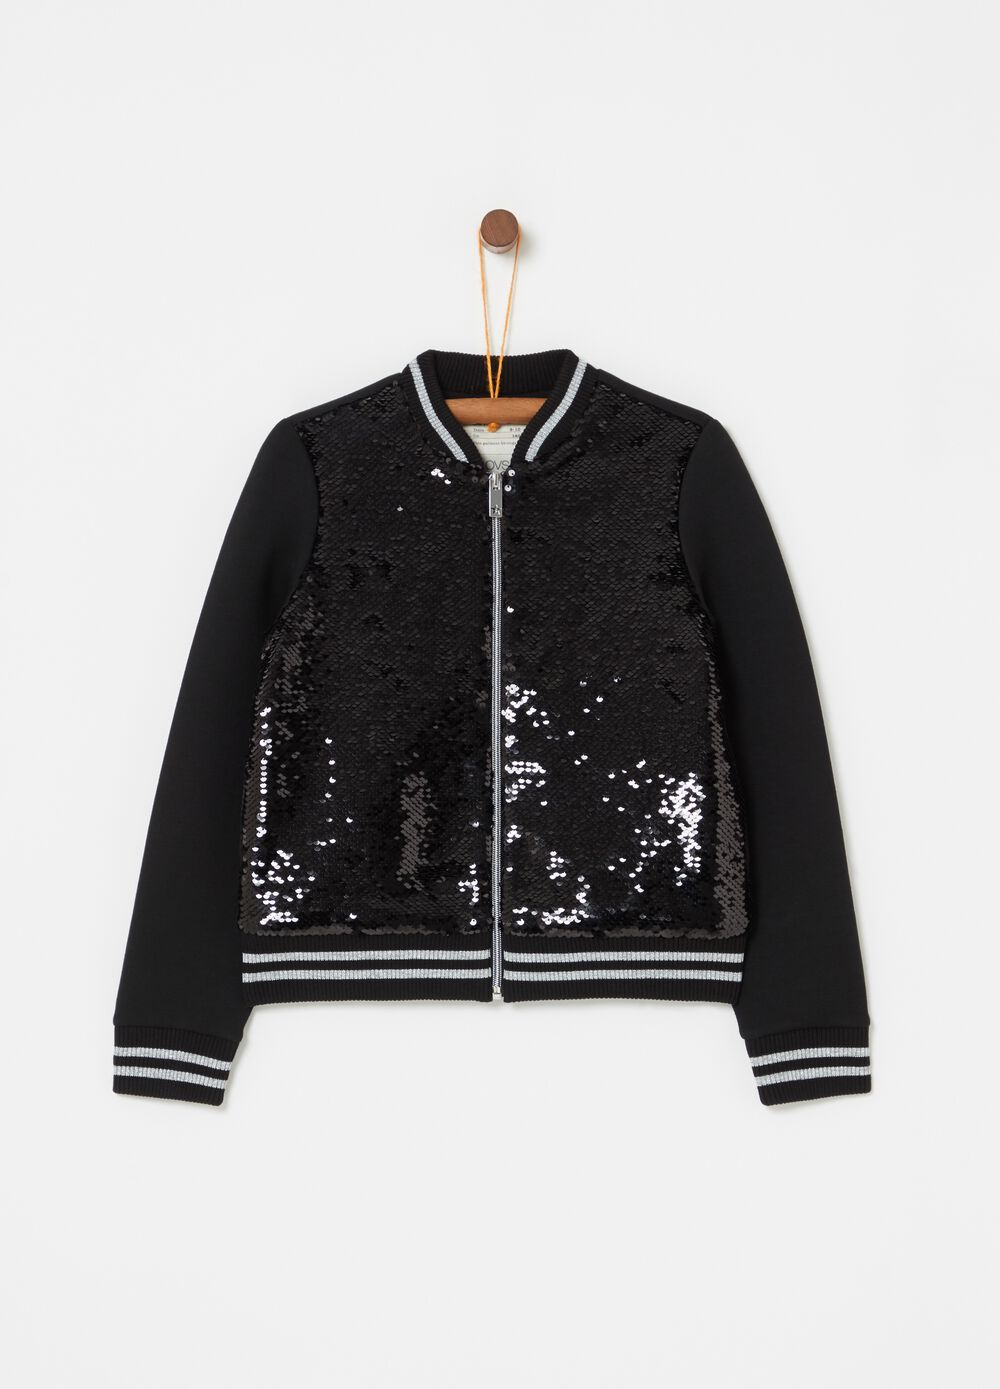 Bomber jacket with striped inserts and sequins